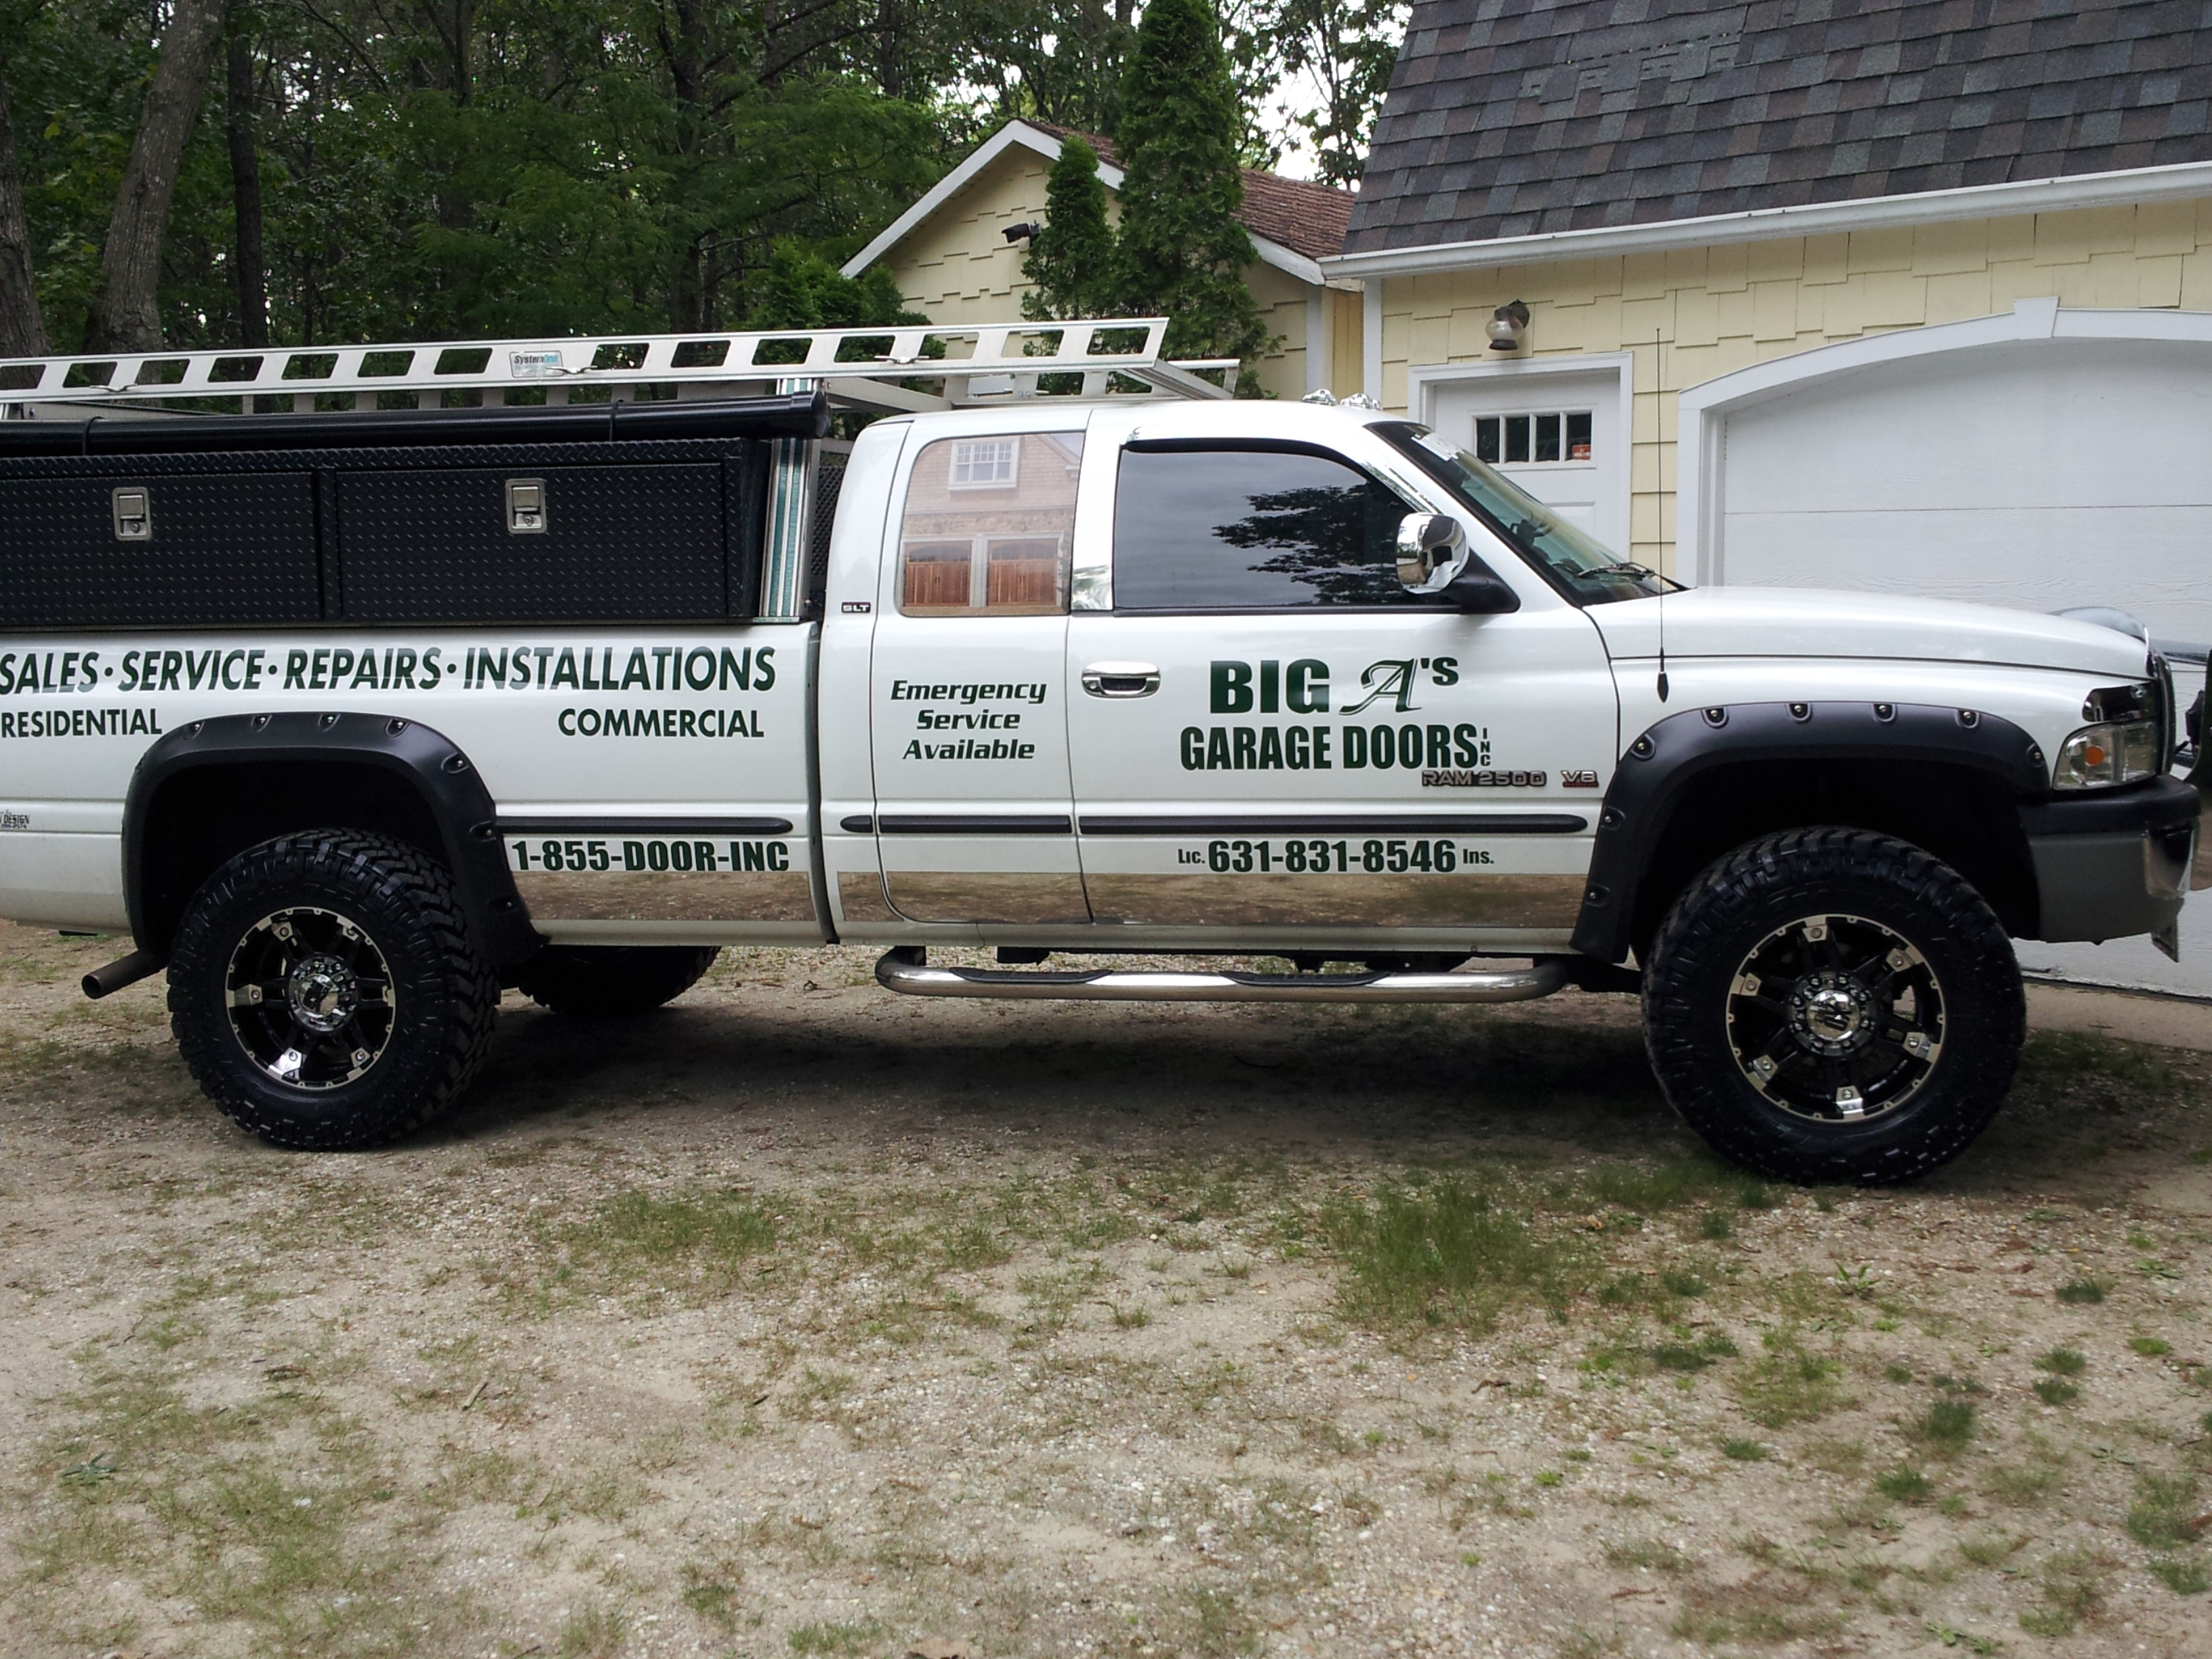 2448 #6C654A Big A's Garage Doors Inc. Coupons Near Me In Manorville 8coupons picture/photo Garage Doors Near Me 37393264